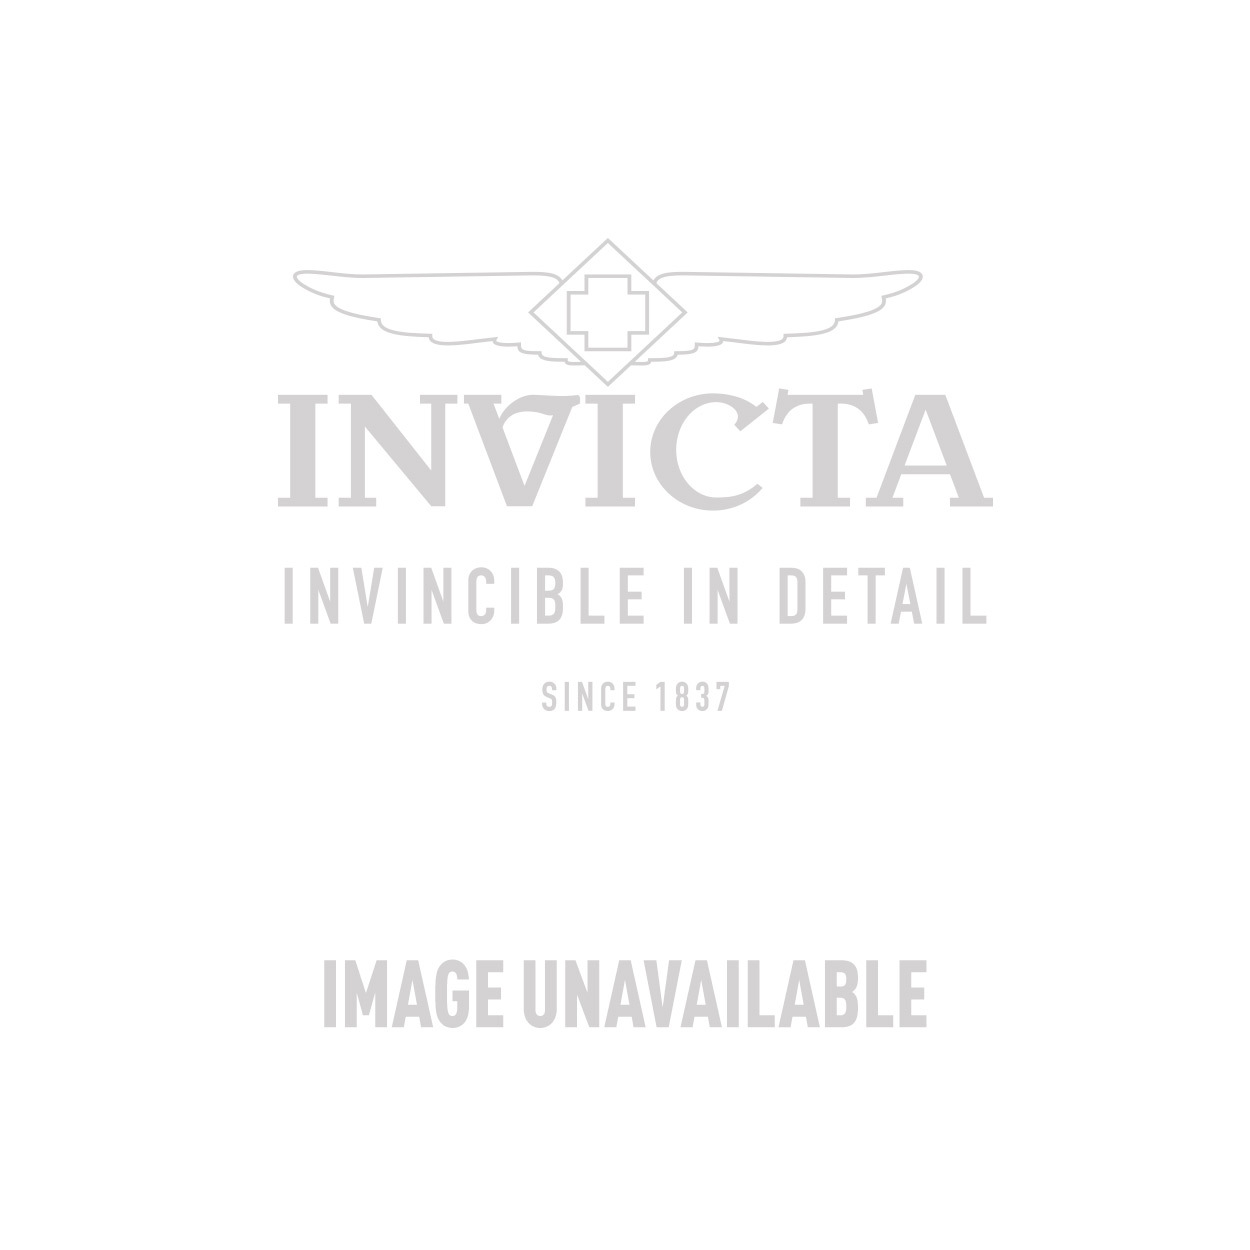 Invicta 20cm Women's Bracelets in Rhodium - Model J0259